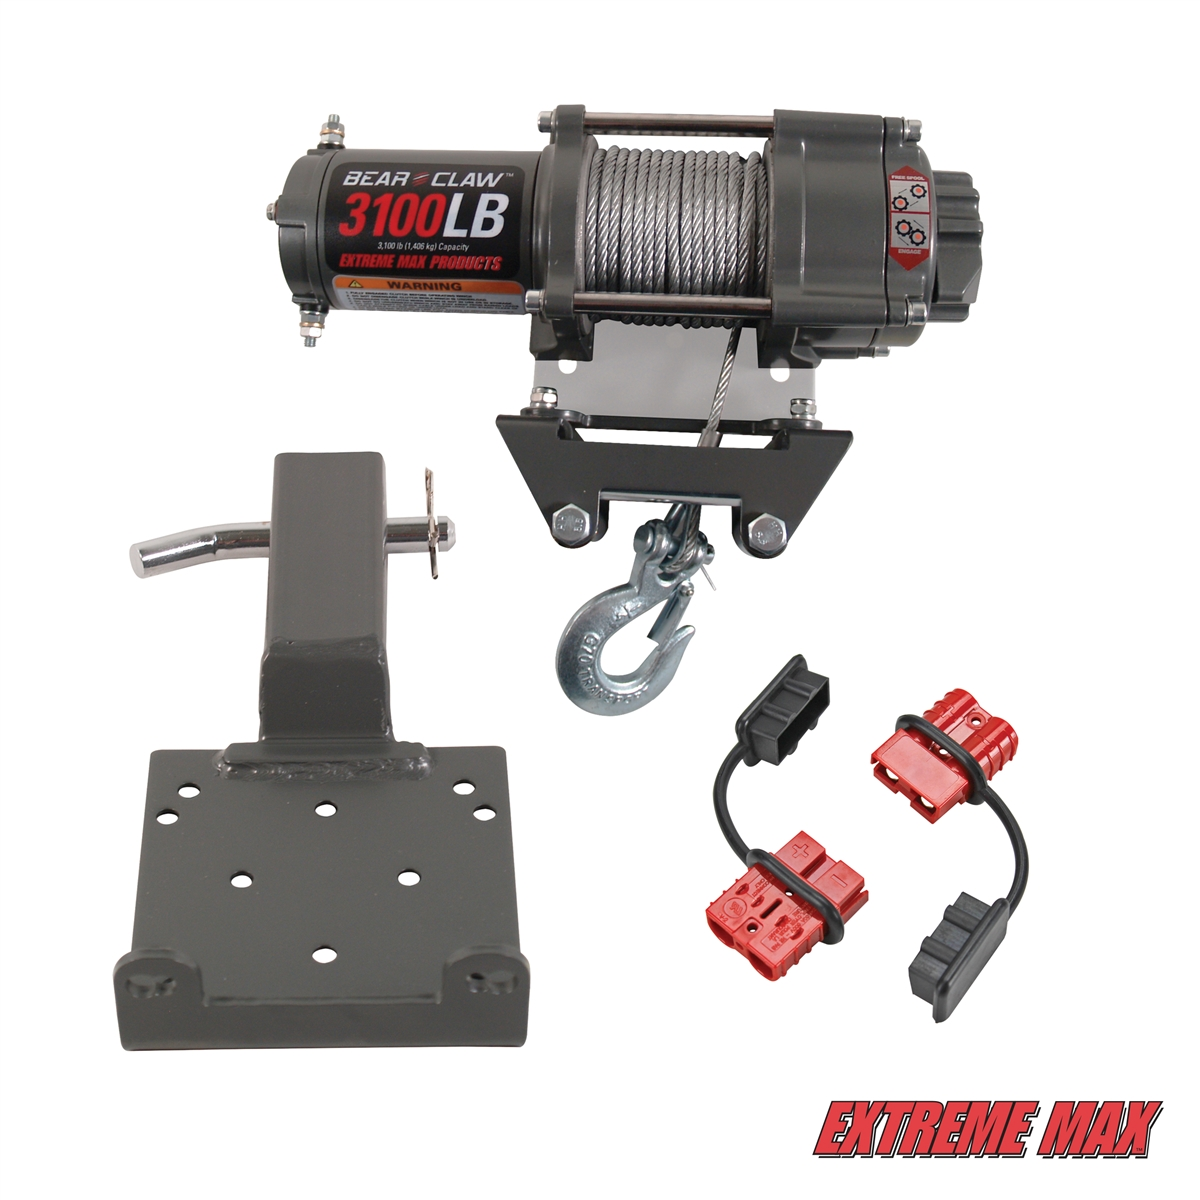 5600.3198 2 extreme max 5600 3198 complete 3100 lb winch & quick release kit bear claw winch wiring diagram at edmiracle.co